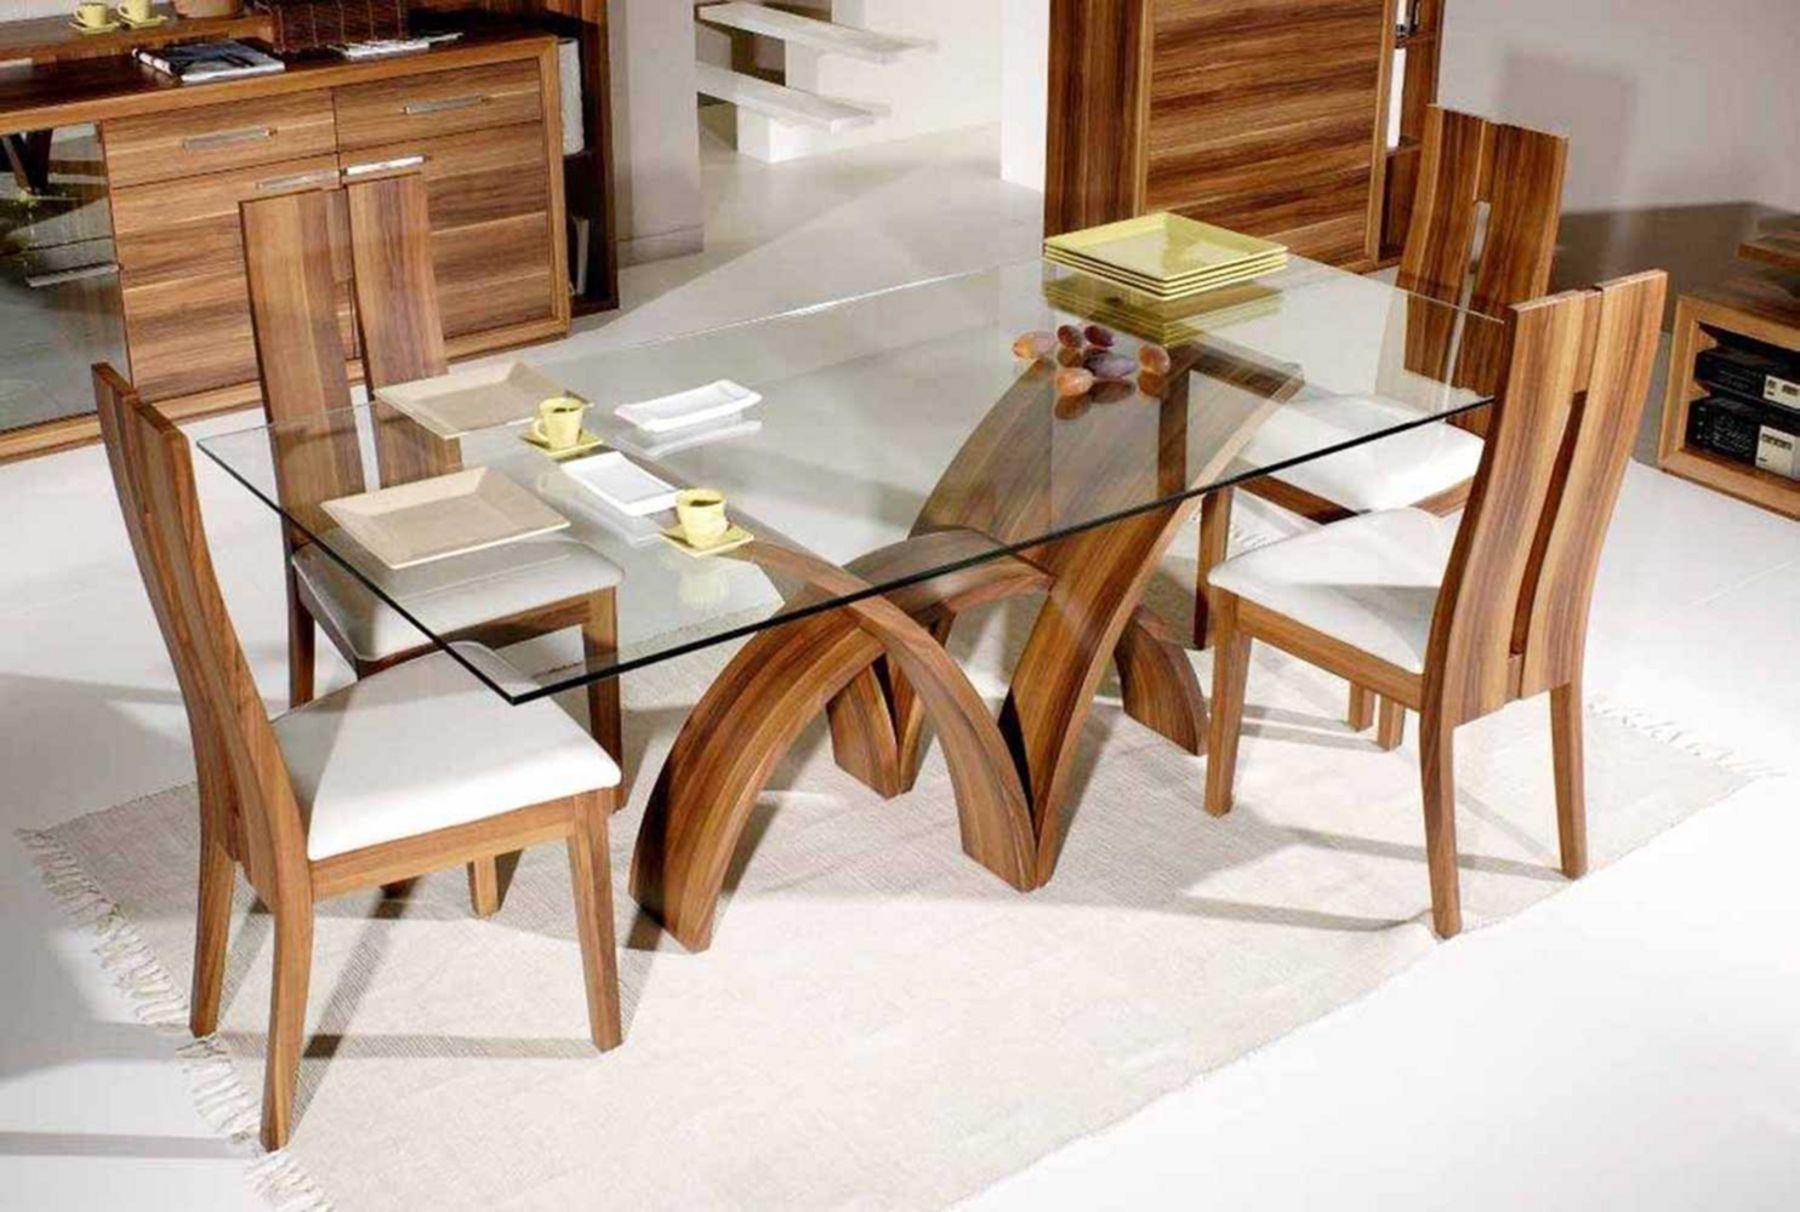 12 Contemporary Dining Table Design Ideas For Your Dining Room Comfort Glass Top Dining Table Dining Table Design Glass Dining Room Table